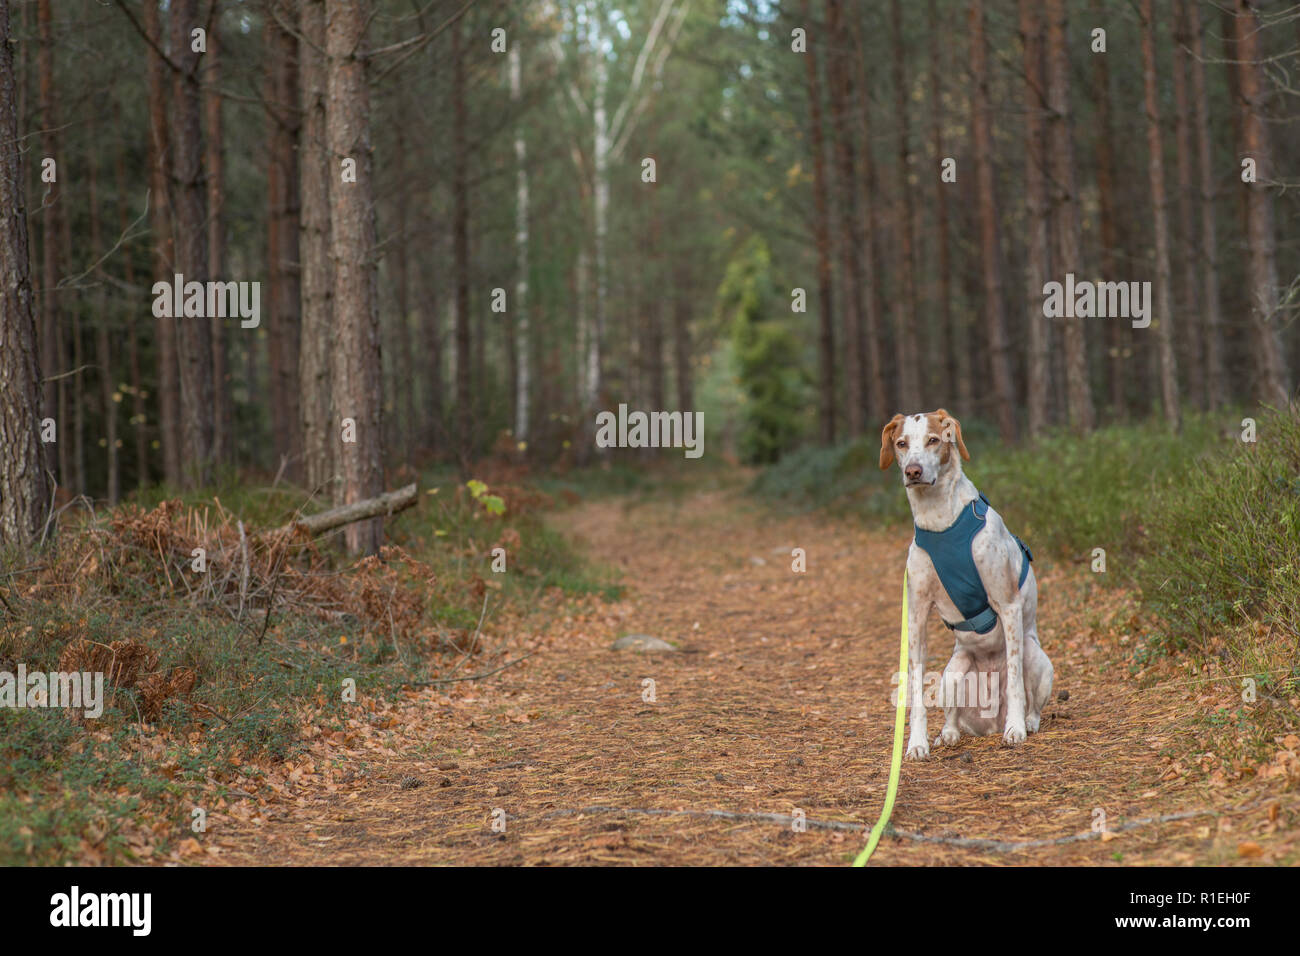 A pointer dog with a harness sitting on a walking path in a Scandinavian forest. - Stock Image